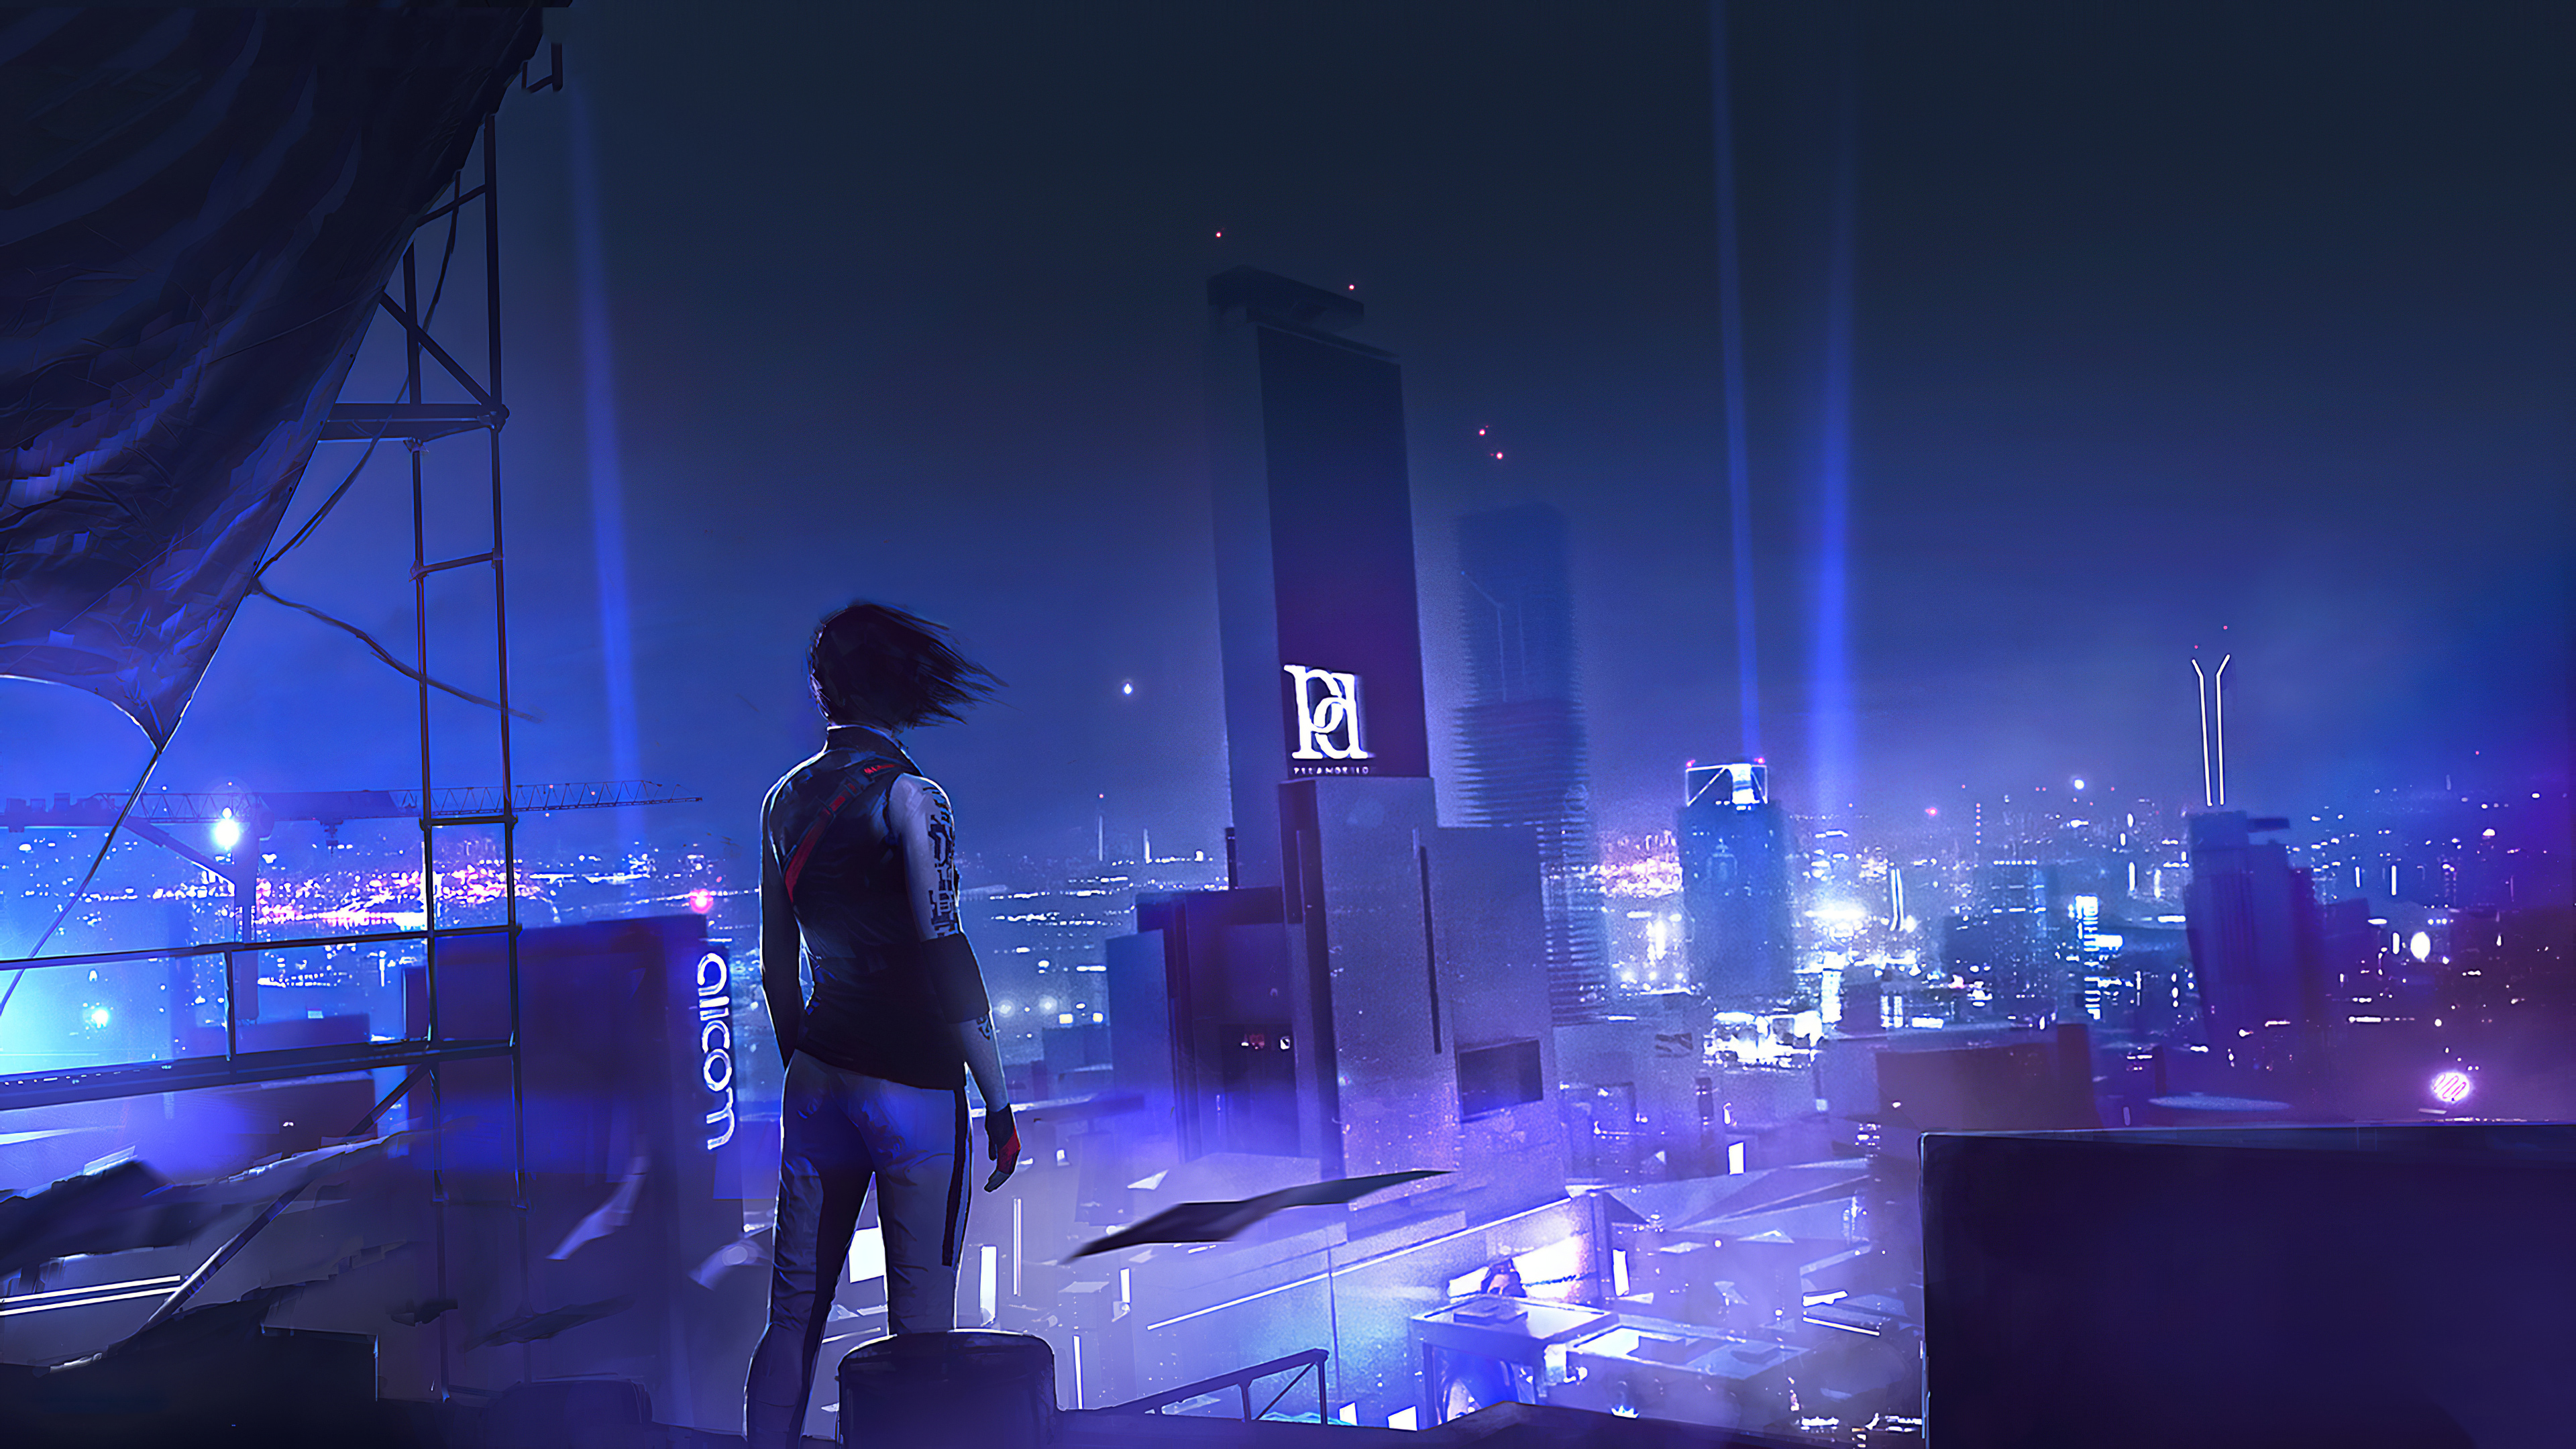 mirrors edge catalyst game 2019 1578851248 - Mirrors Edge Catalyst Game 2019 - Mirrors Edge Catalyst Game 2019 4k wallpaper